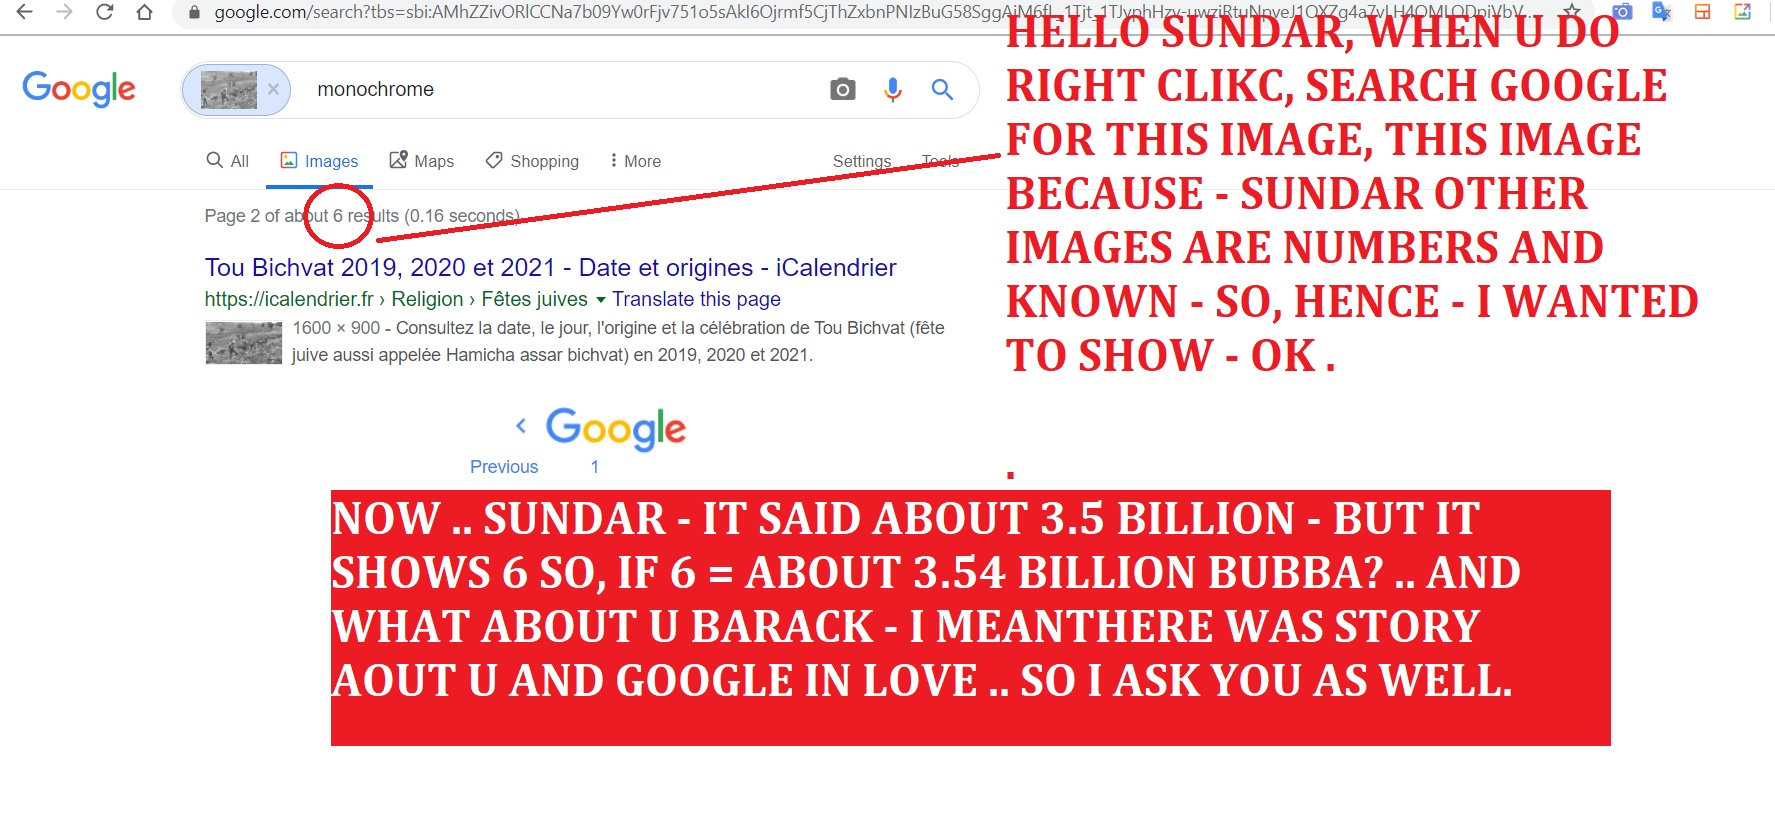 NOW .. SUNDAR - IT SAID ABOUT 3.5 BILLION - BUT IT SHOWS 6 SO, IF 6 = ABOUT 3.54 BILLION BUBBA .. AND WHAT ABOUT U BARACK - I MEANTHERE WAS STORY AOUT U AND GOOGLE IN LOVE .. SO I ASK YOU AS WELL.